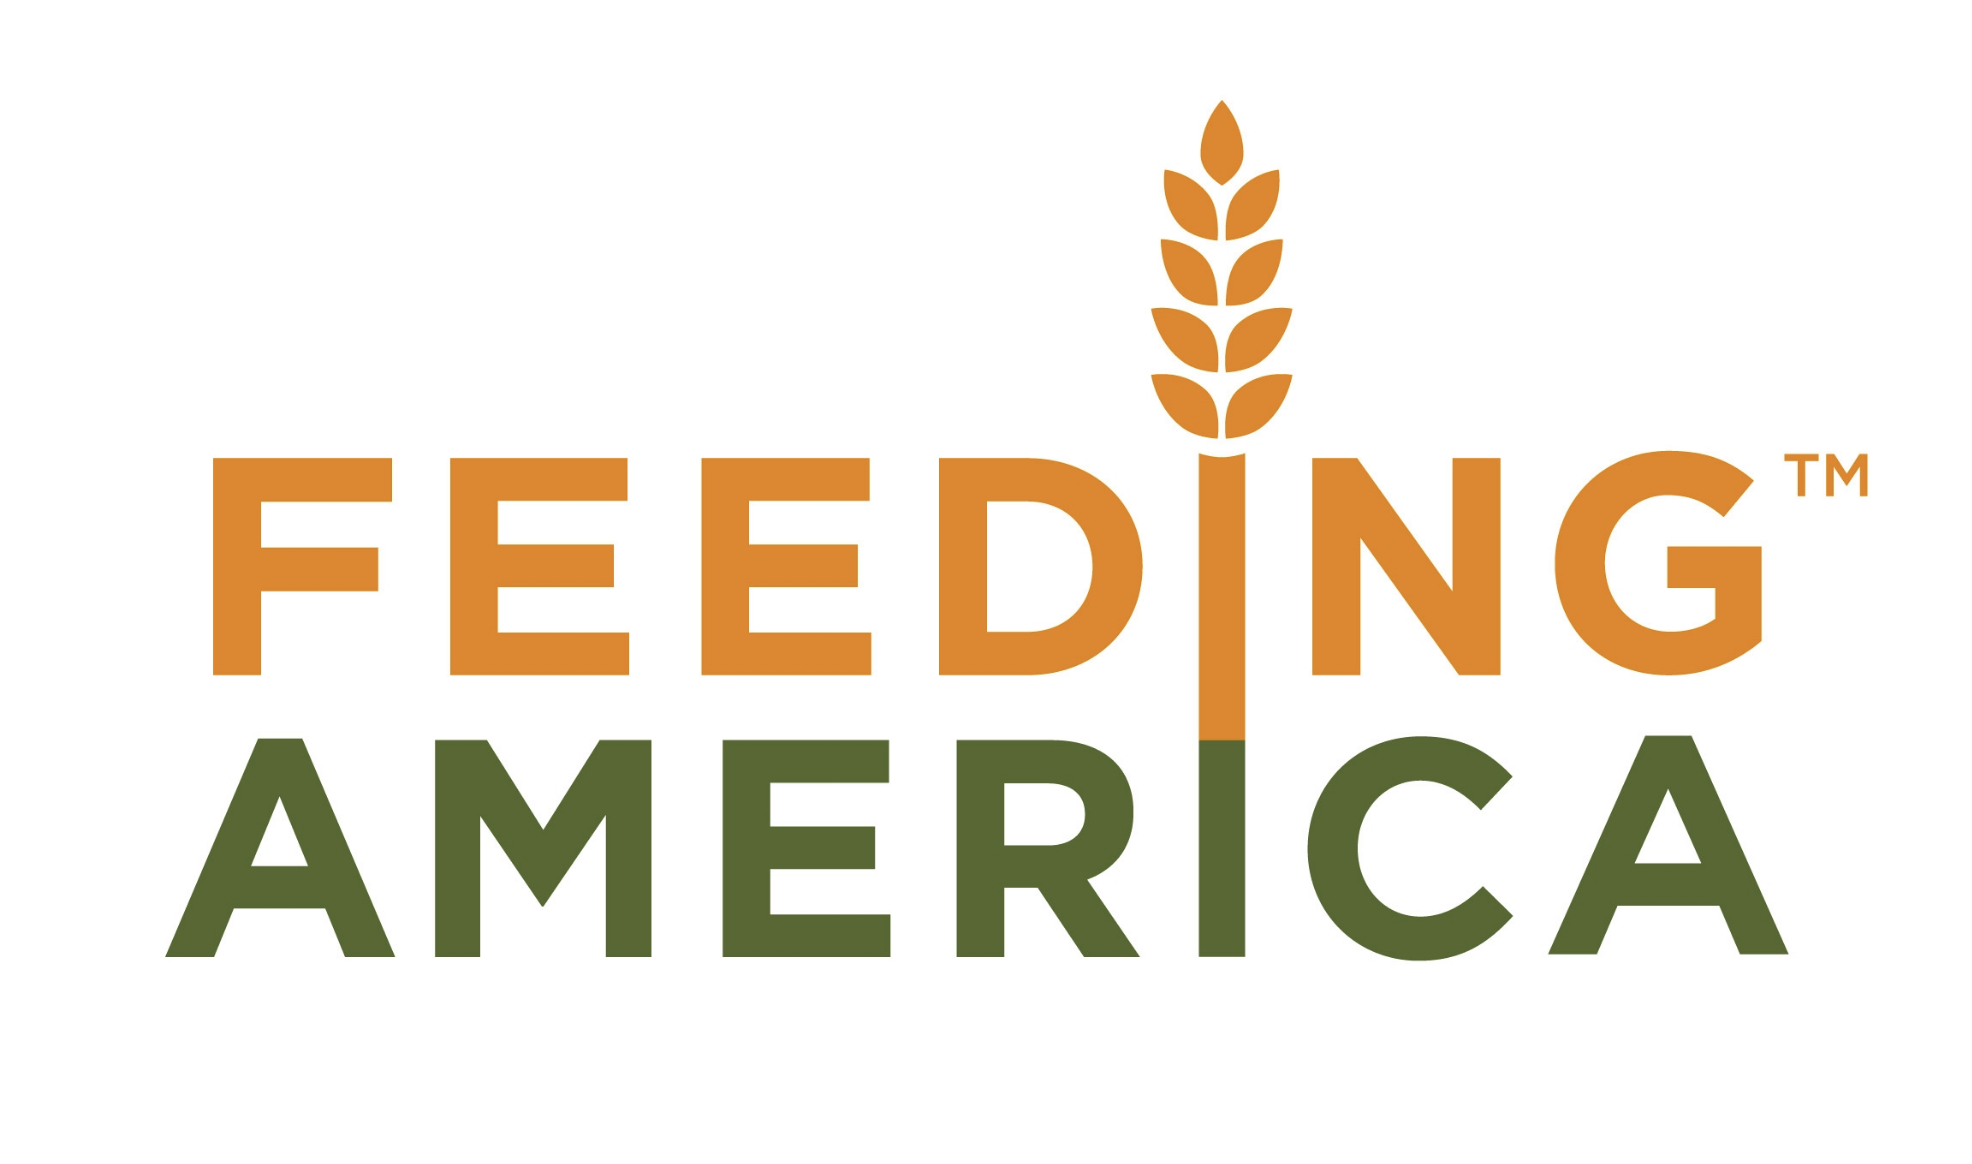 """The #1 charity in America fighting hunger. """"Feeding America, formerly America's Second Harvest, is the nation's leading domestic hunger-relief charity. Our mission is to feed America's hungry through a nationwide network of member food banks and engage our country in the fight to end hunger. Each year, the Feeding America network provides food assistance to more than 25 million low-income people facing hunger in the United States, including more than nine million children and nearly three million seniors. Our network of more than 200 food banks serves all 50 states, the District of Columbia and Puerto Rico. The Feeding America network secures and distributes more than two billion pounds of donated food and grocery products annually."""""""